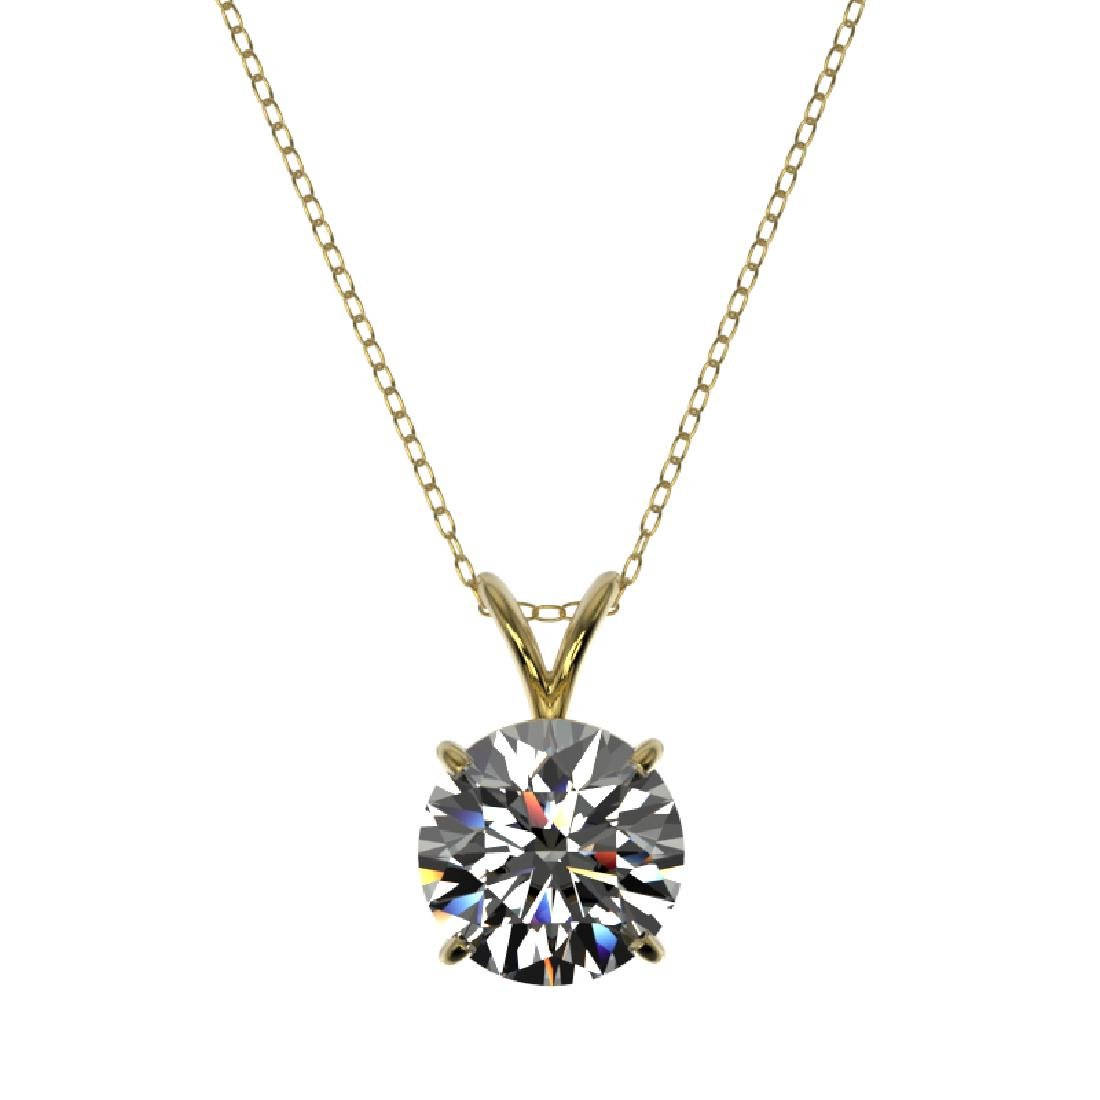 2 CTW Certified G-SI Diamond Bridal Necklace 10K Yellow - 3